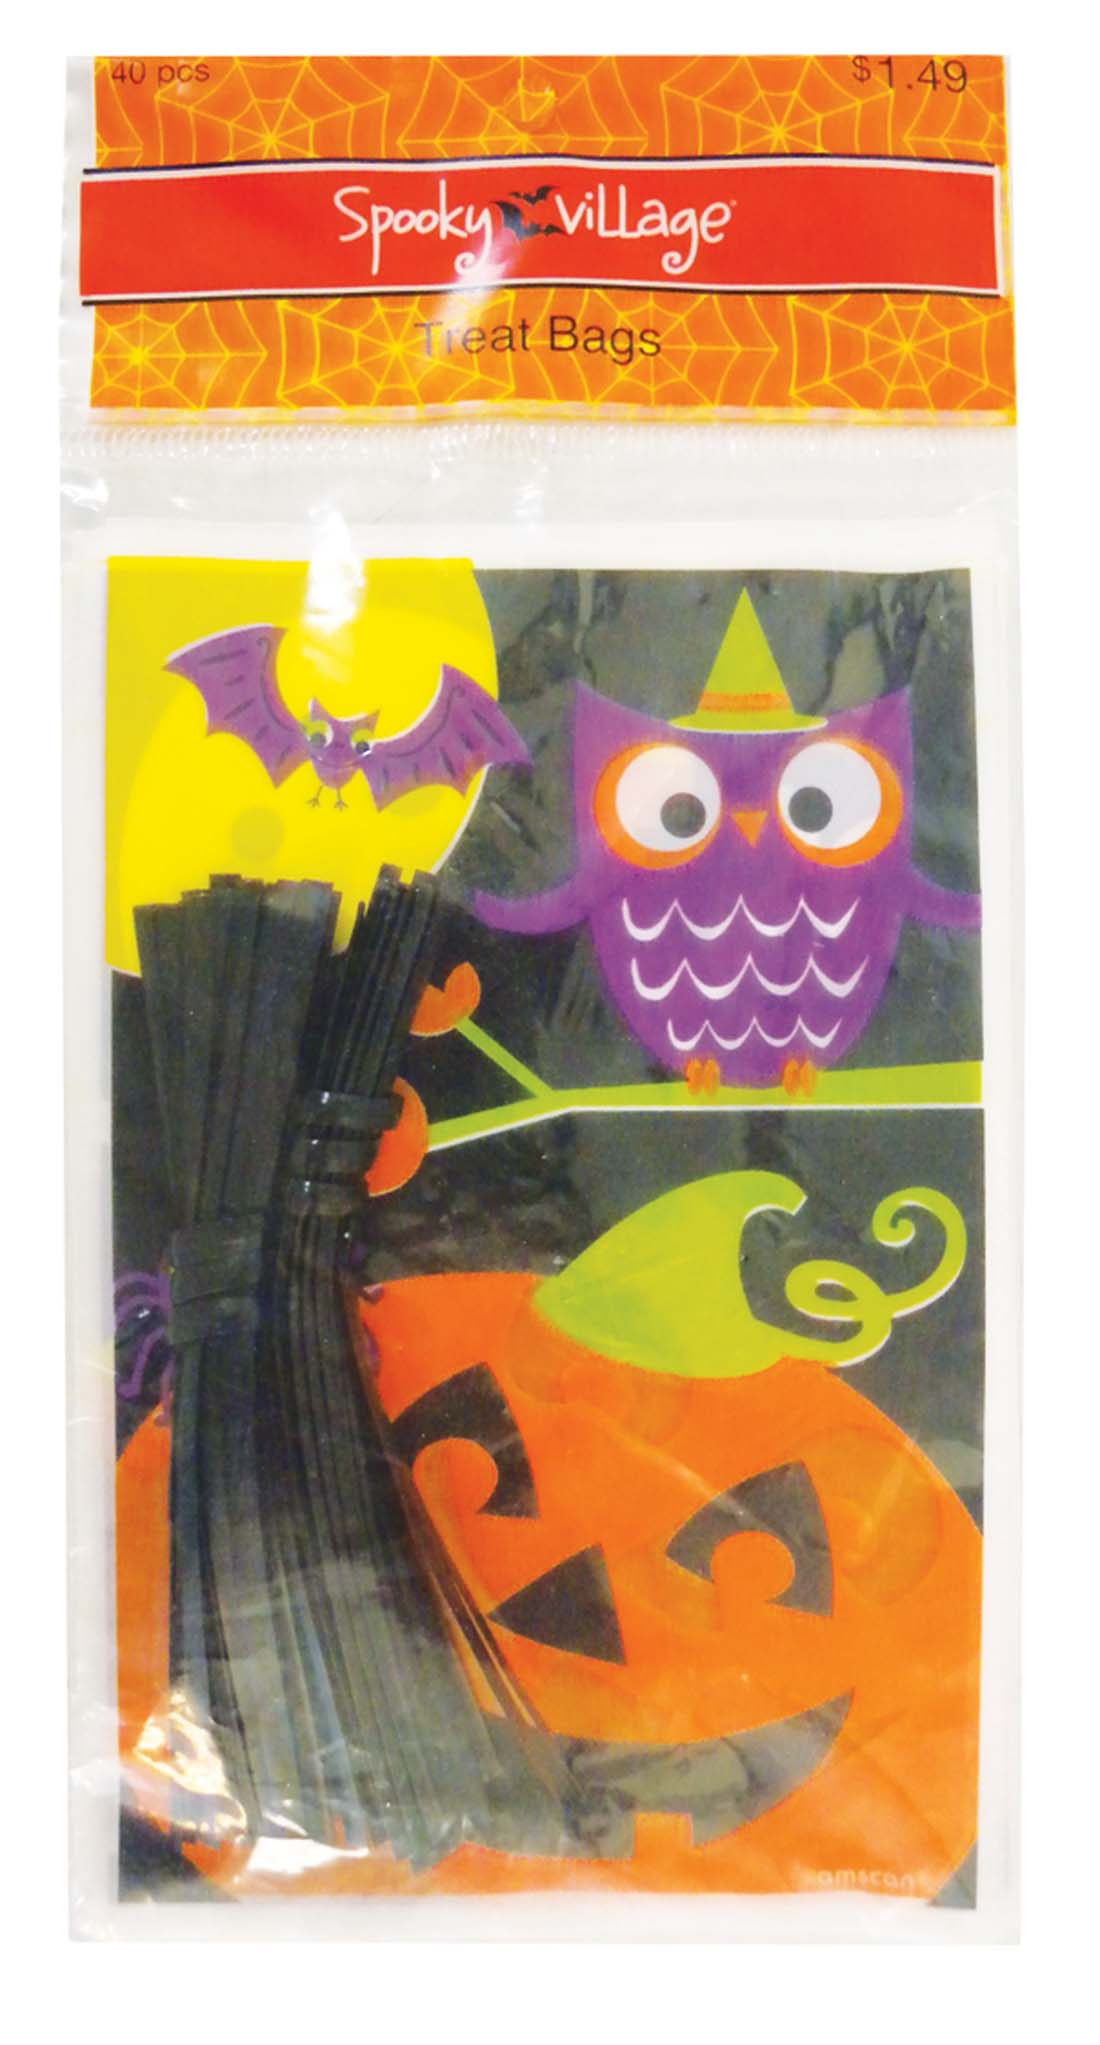 View HALLOWEEN TREAT BAGS 40 COUNT PREPRICED $1.49